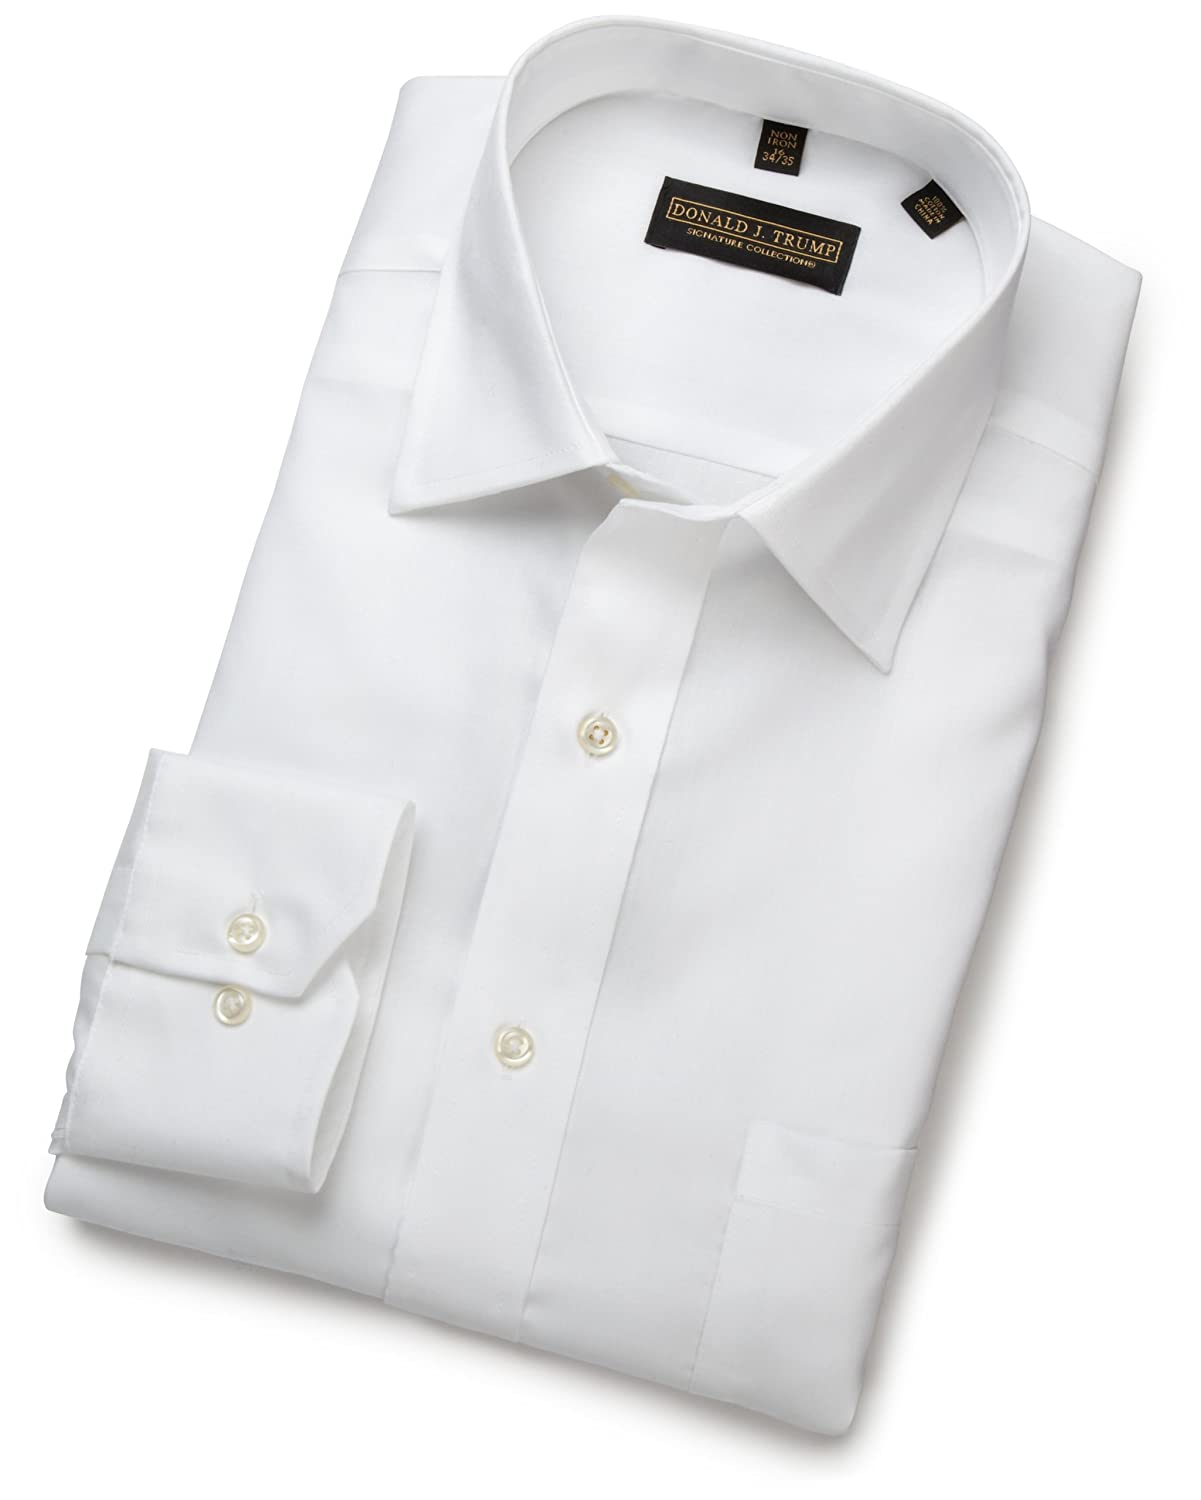 Donald Trump Barrel Cuff Dress Shirt (White)